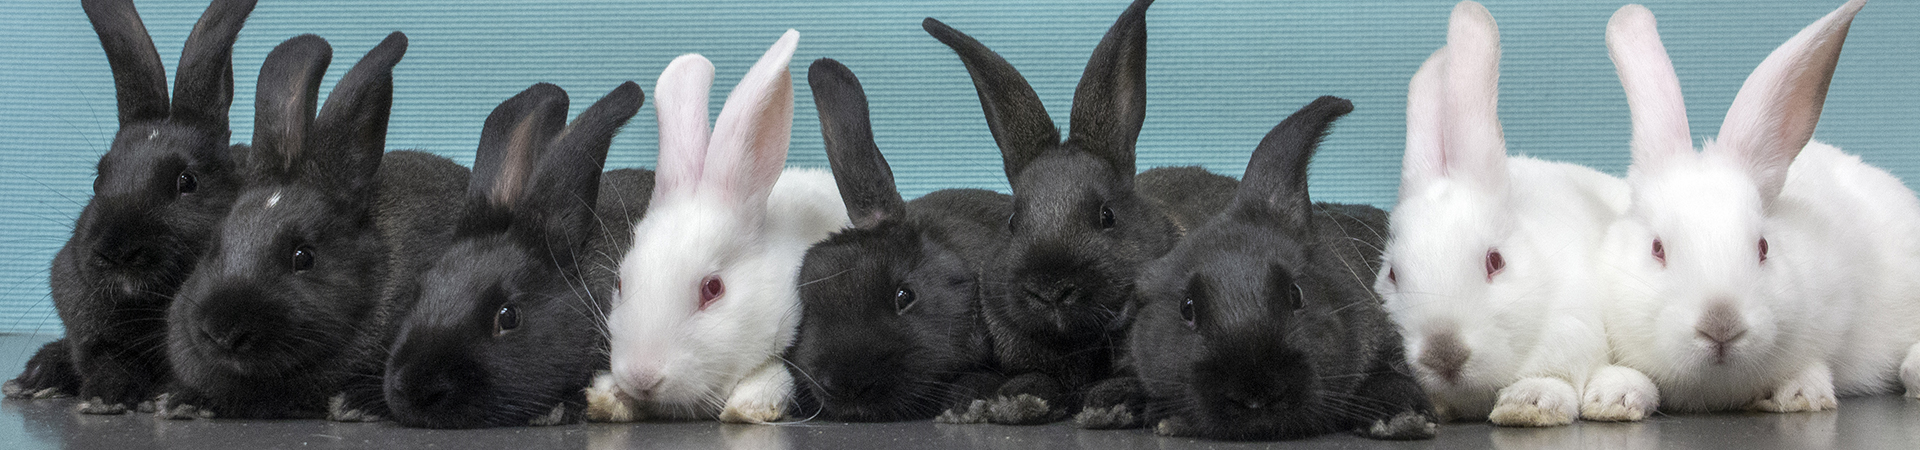 a large group of rabbits sit in a row.